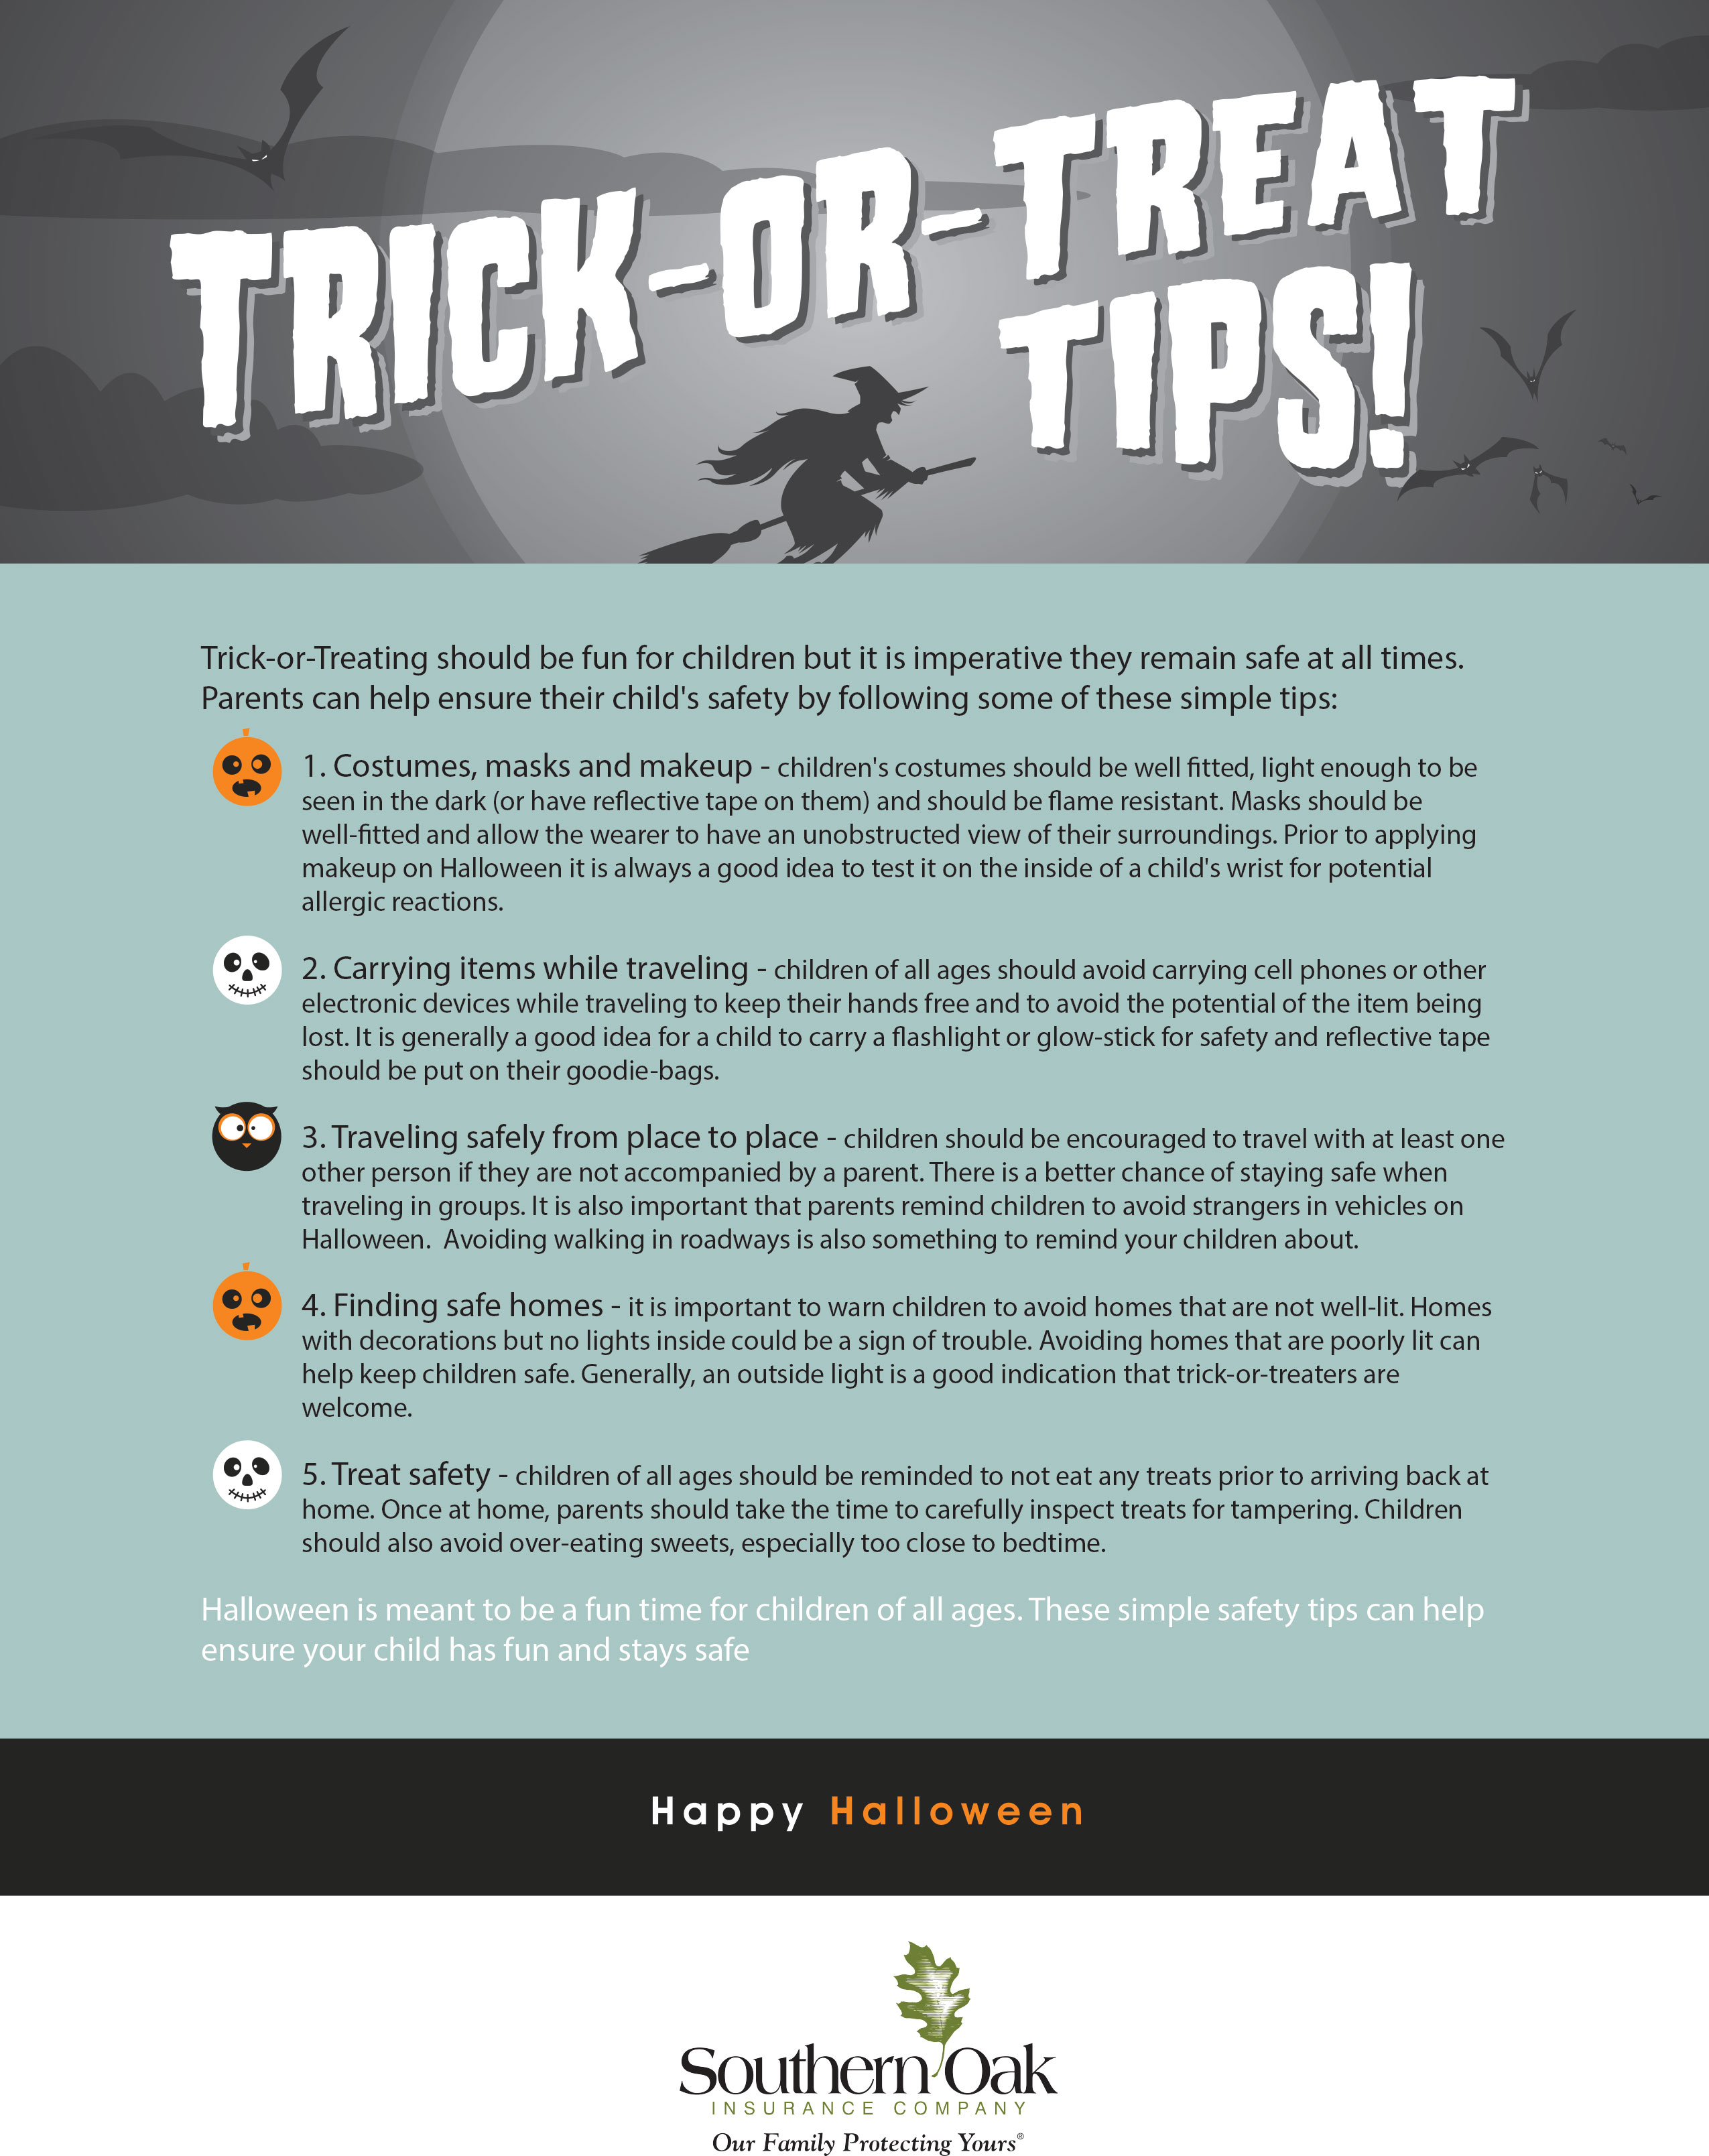 Trick or Treating Safety - Southern Oak Insurance